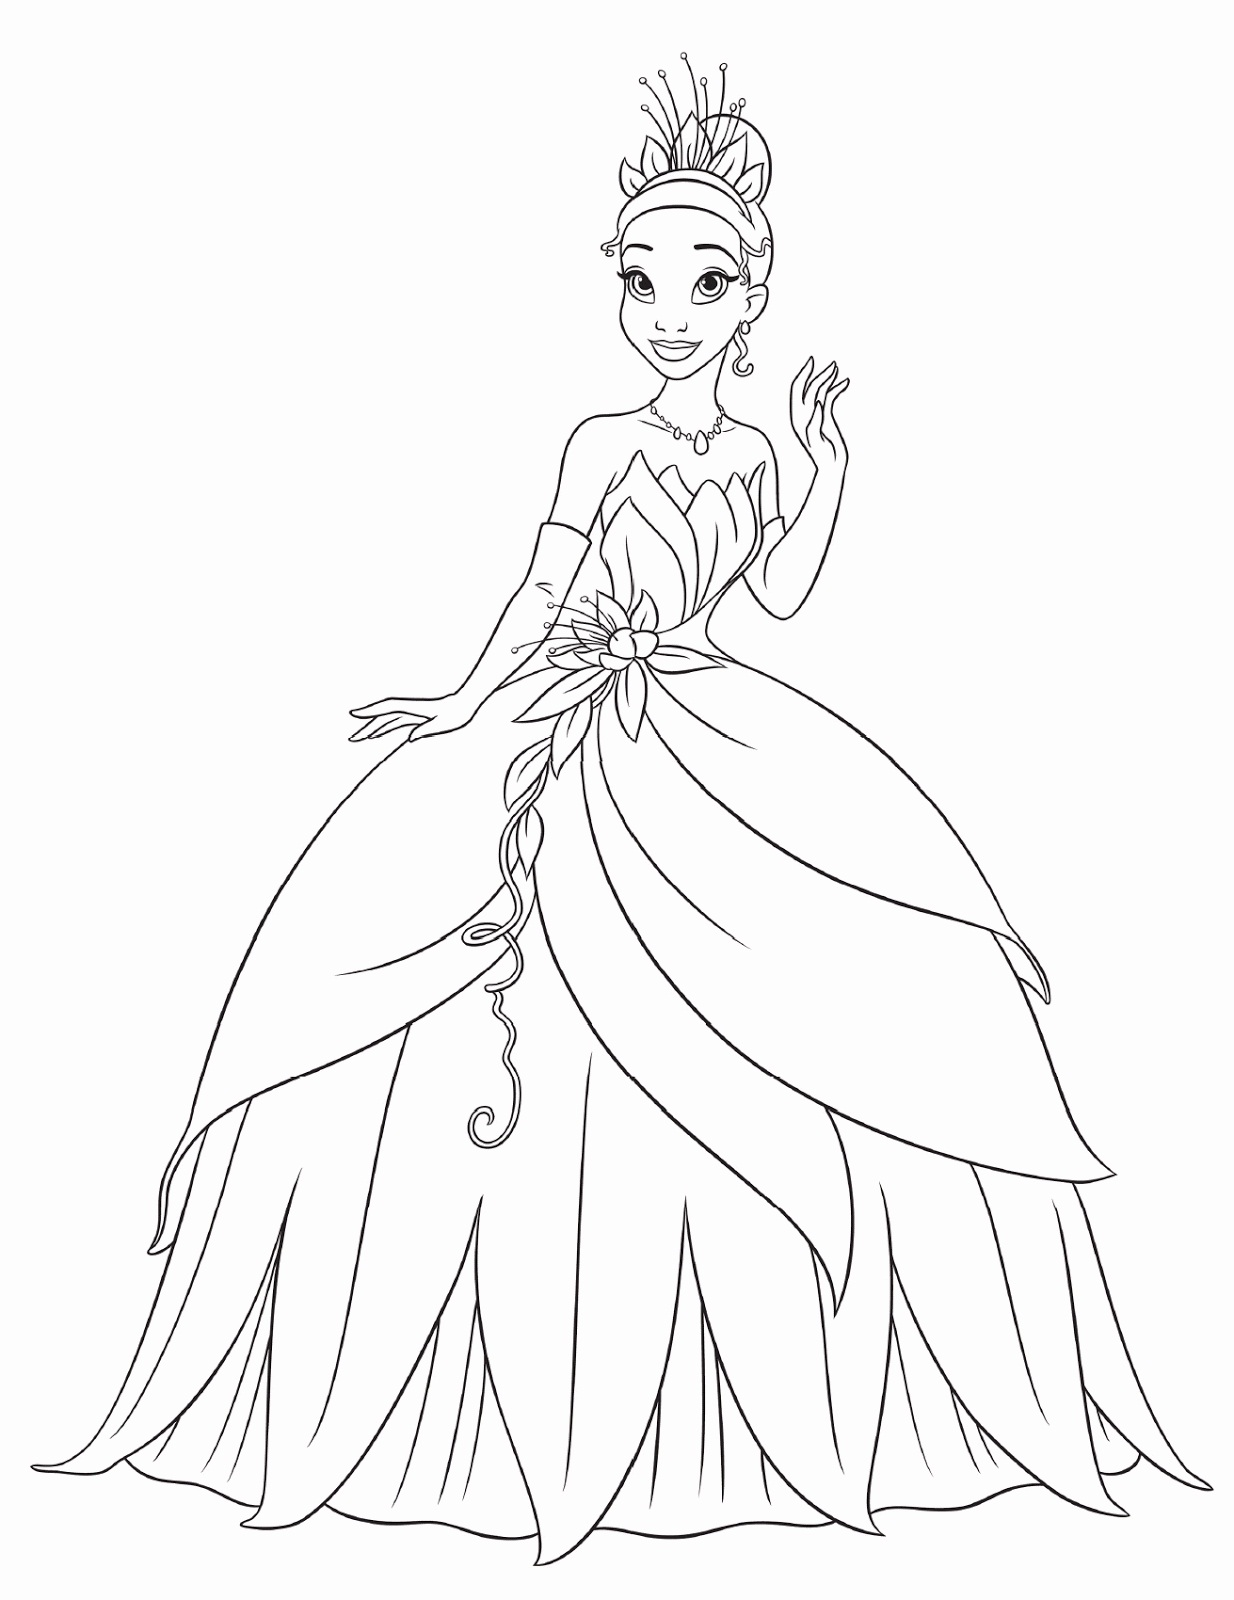 Free Coloring Pages Of Princess Gowns Coloring Pages Princess Printable